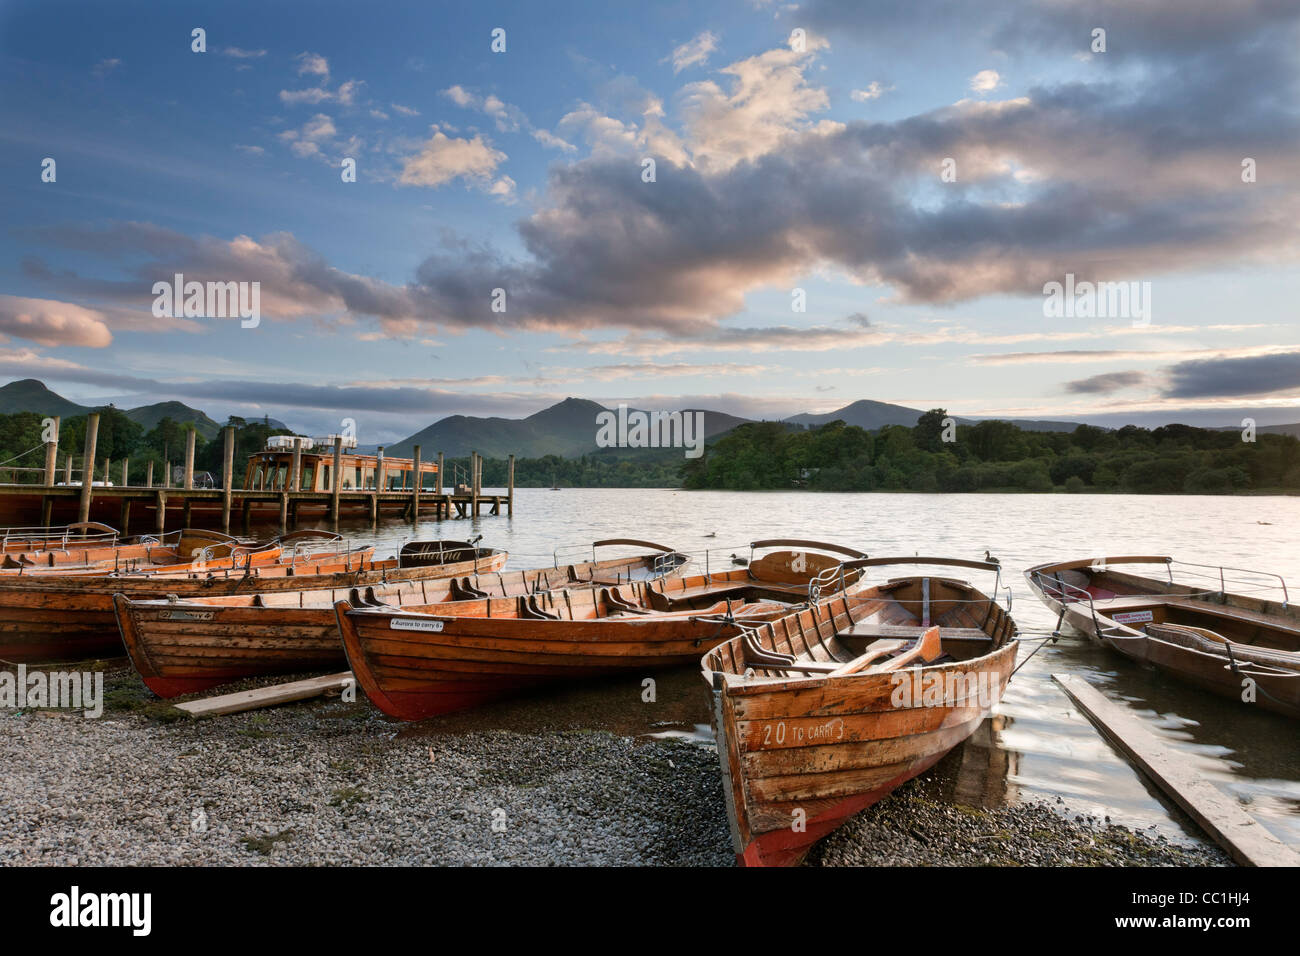 Rowing boats and jettys at Keswick, Lake Derwent Water, Cumbria, England, Europe. - Stock Image